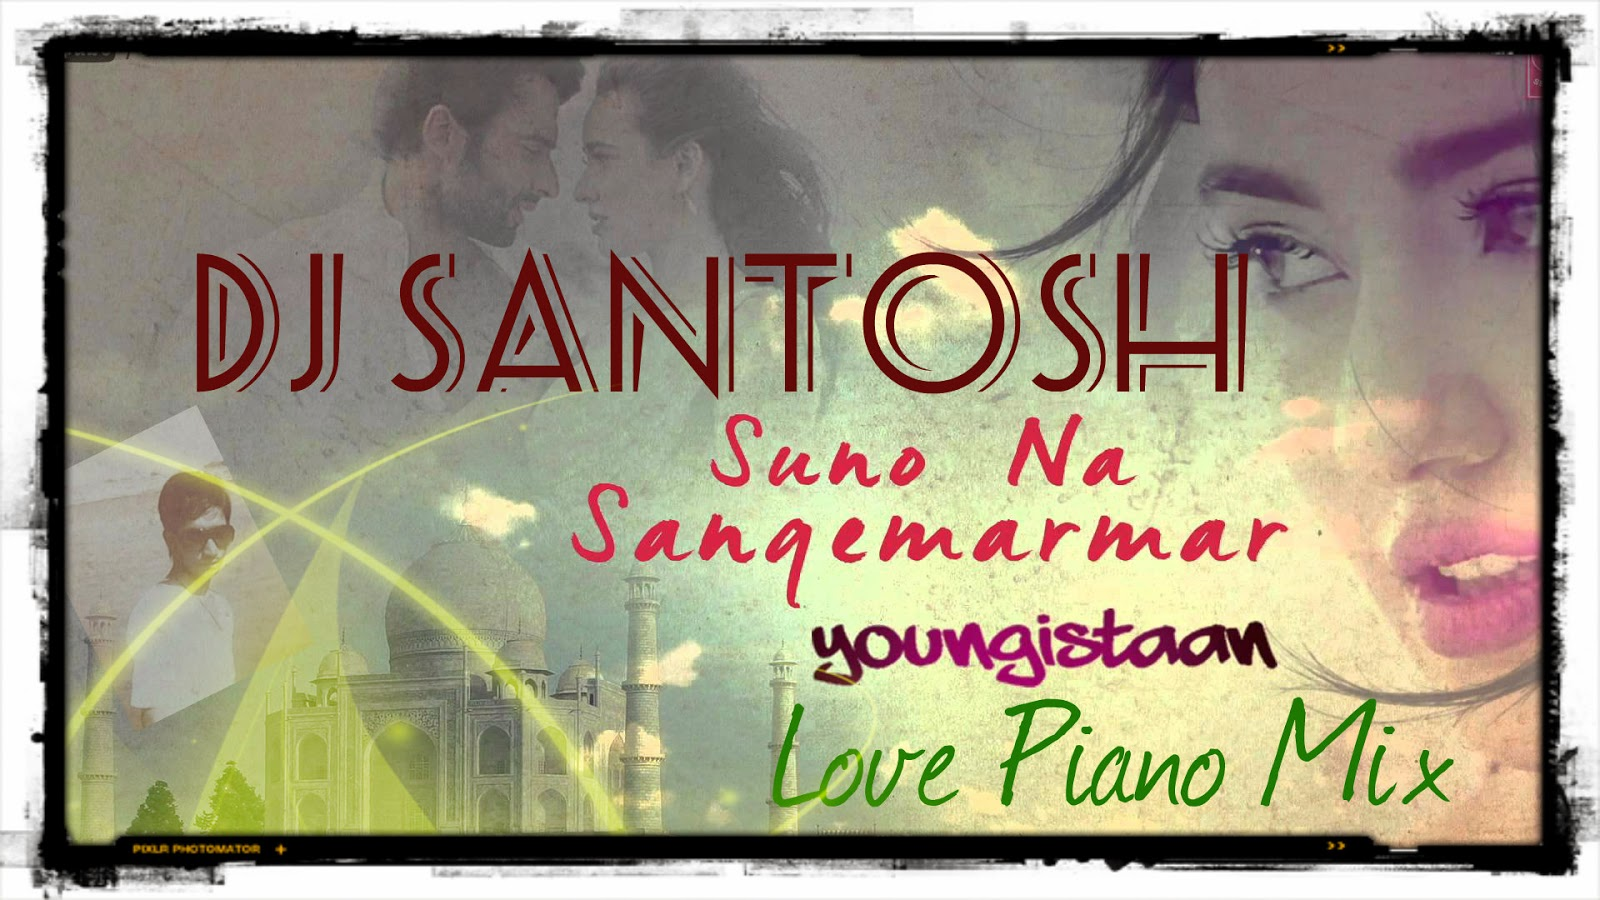 dj santosh jhansi: suno na sangemarmar (love piano mix)_dj santosh